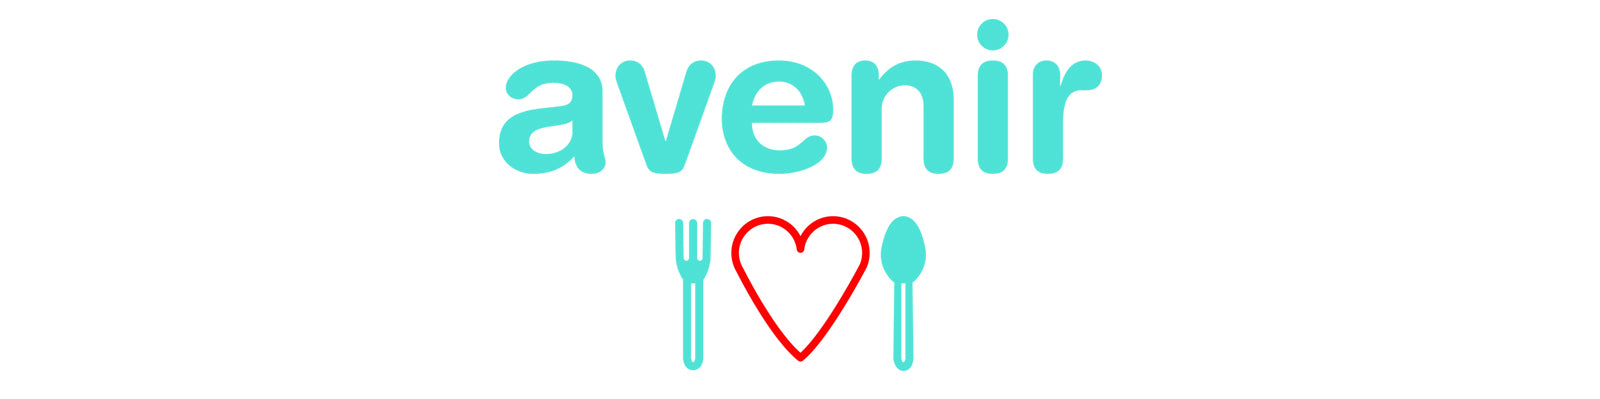 Avenir our charity Onze Montreal